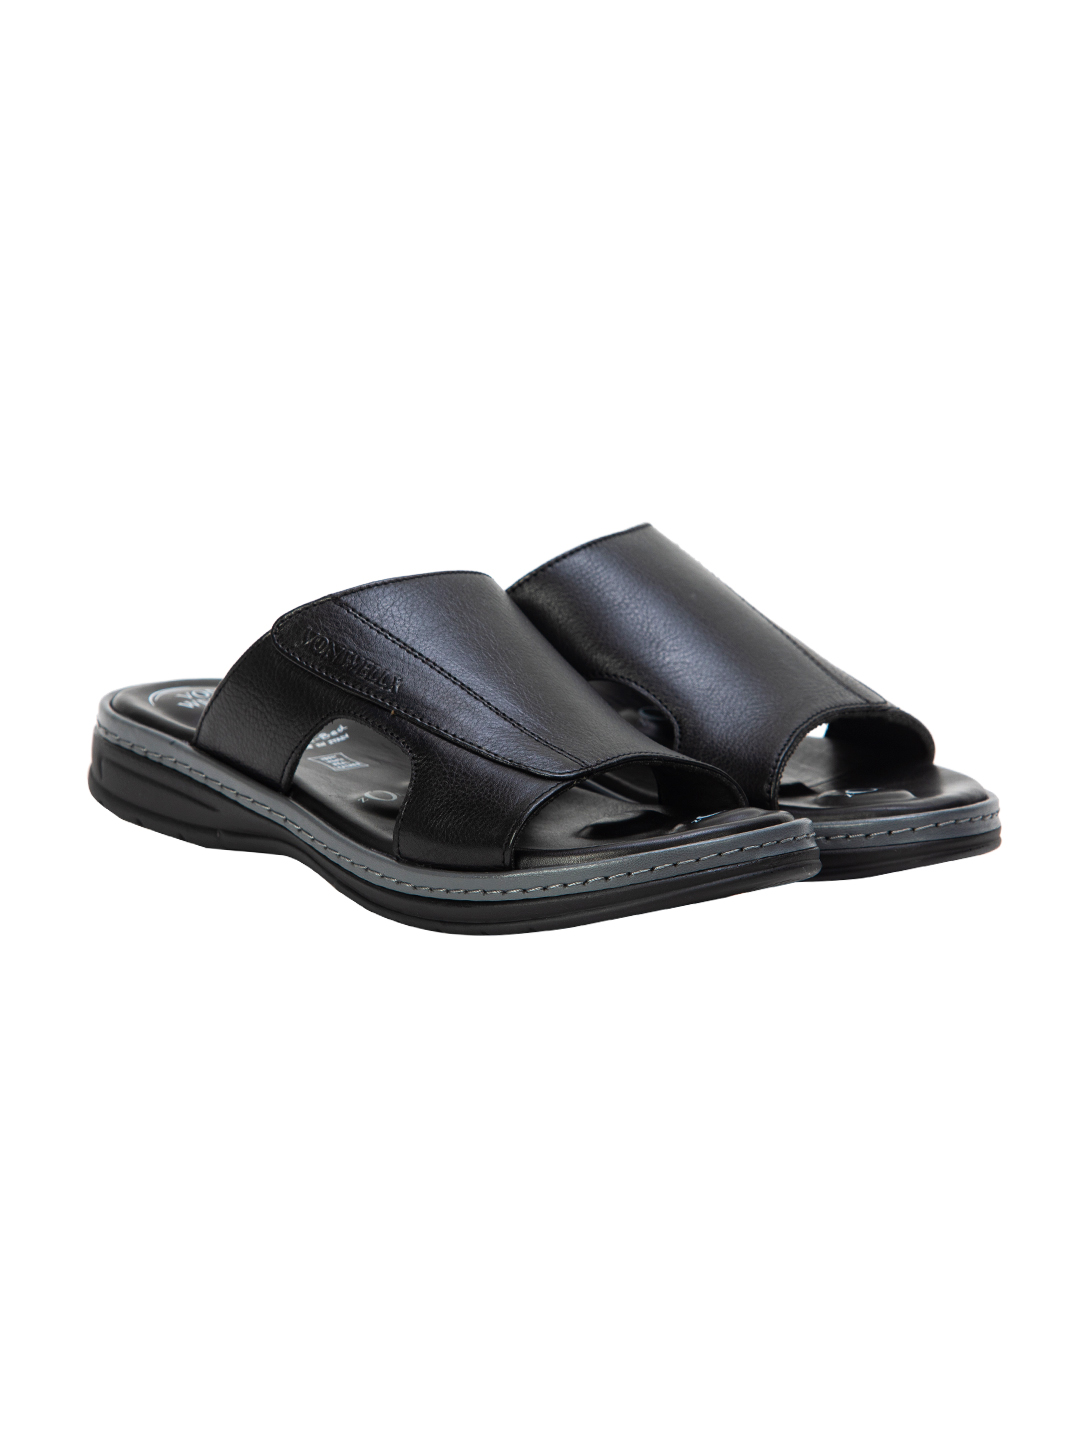 VON WELLX GERMANY COMFORT SAUNTER BLACK SLIPPERS